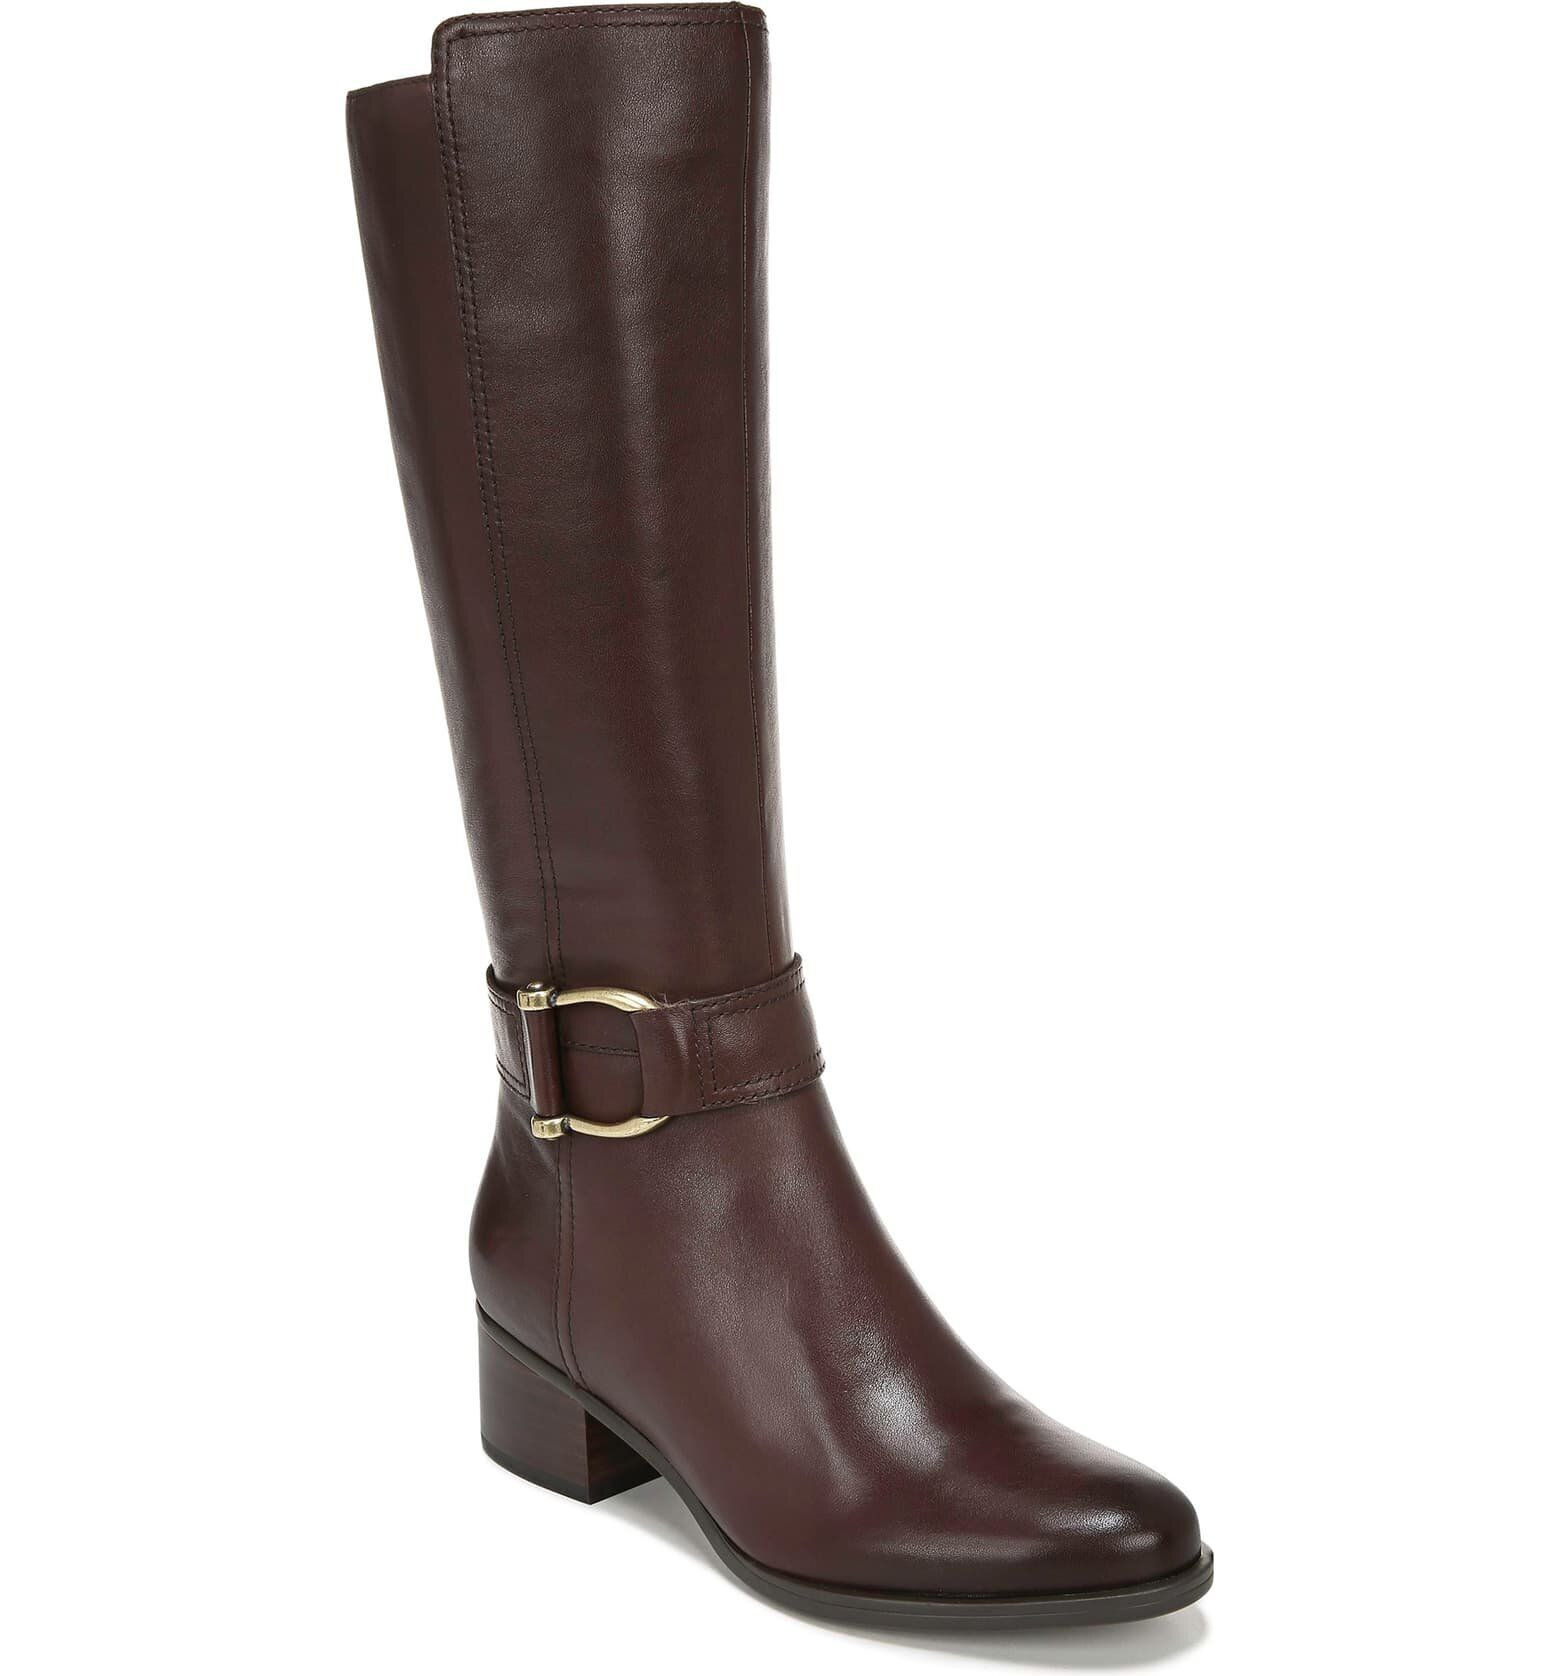 10 Knee-High Boots For Fall 2019 You'll